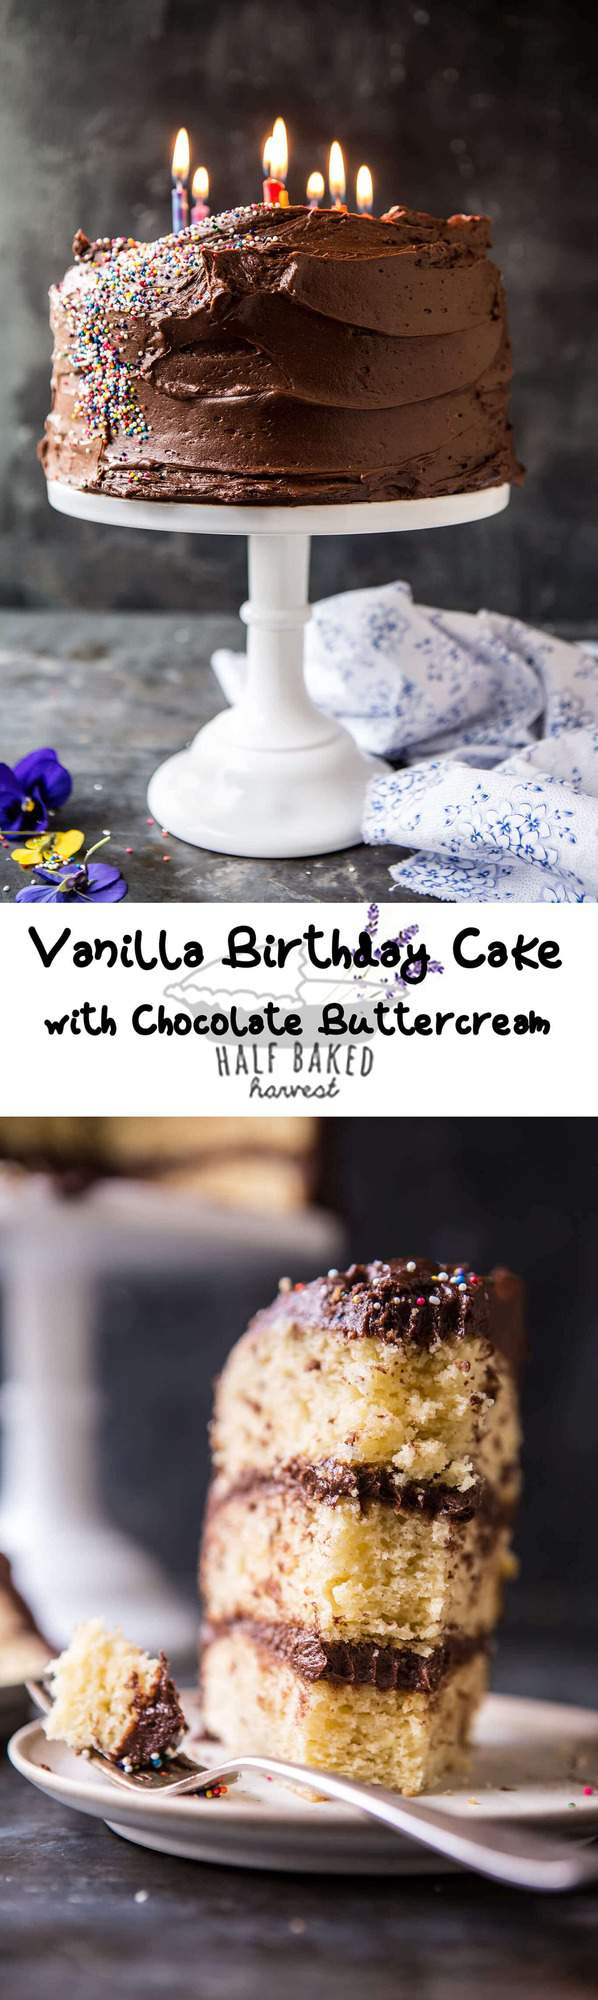 Vanilla Birthday Cake with Whipped Chocolate Buttercream | halfbakedharvest.com @hbharvest